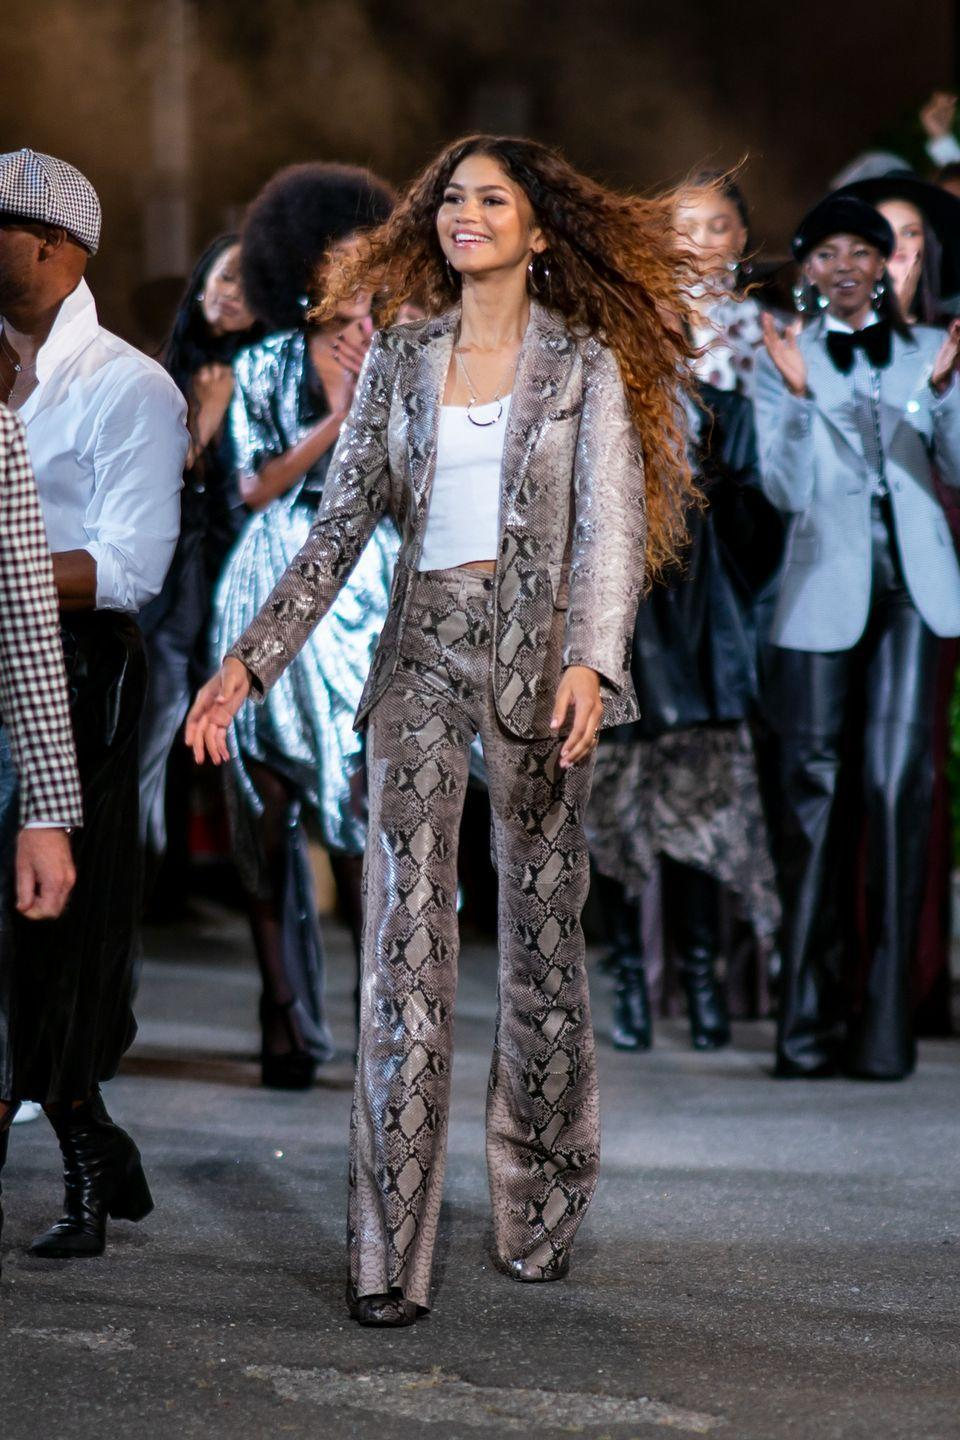 <p>Zendaya at the TOMMYNOW New York Fall 2019 fashion show debut in Tommy Hilfiger. </p>